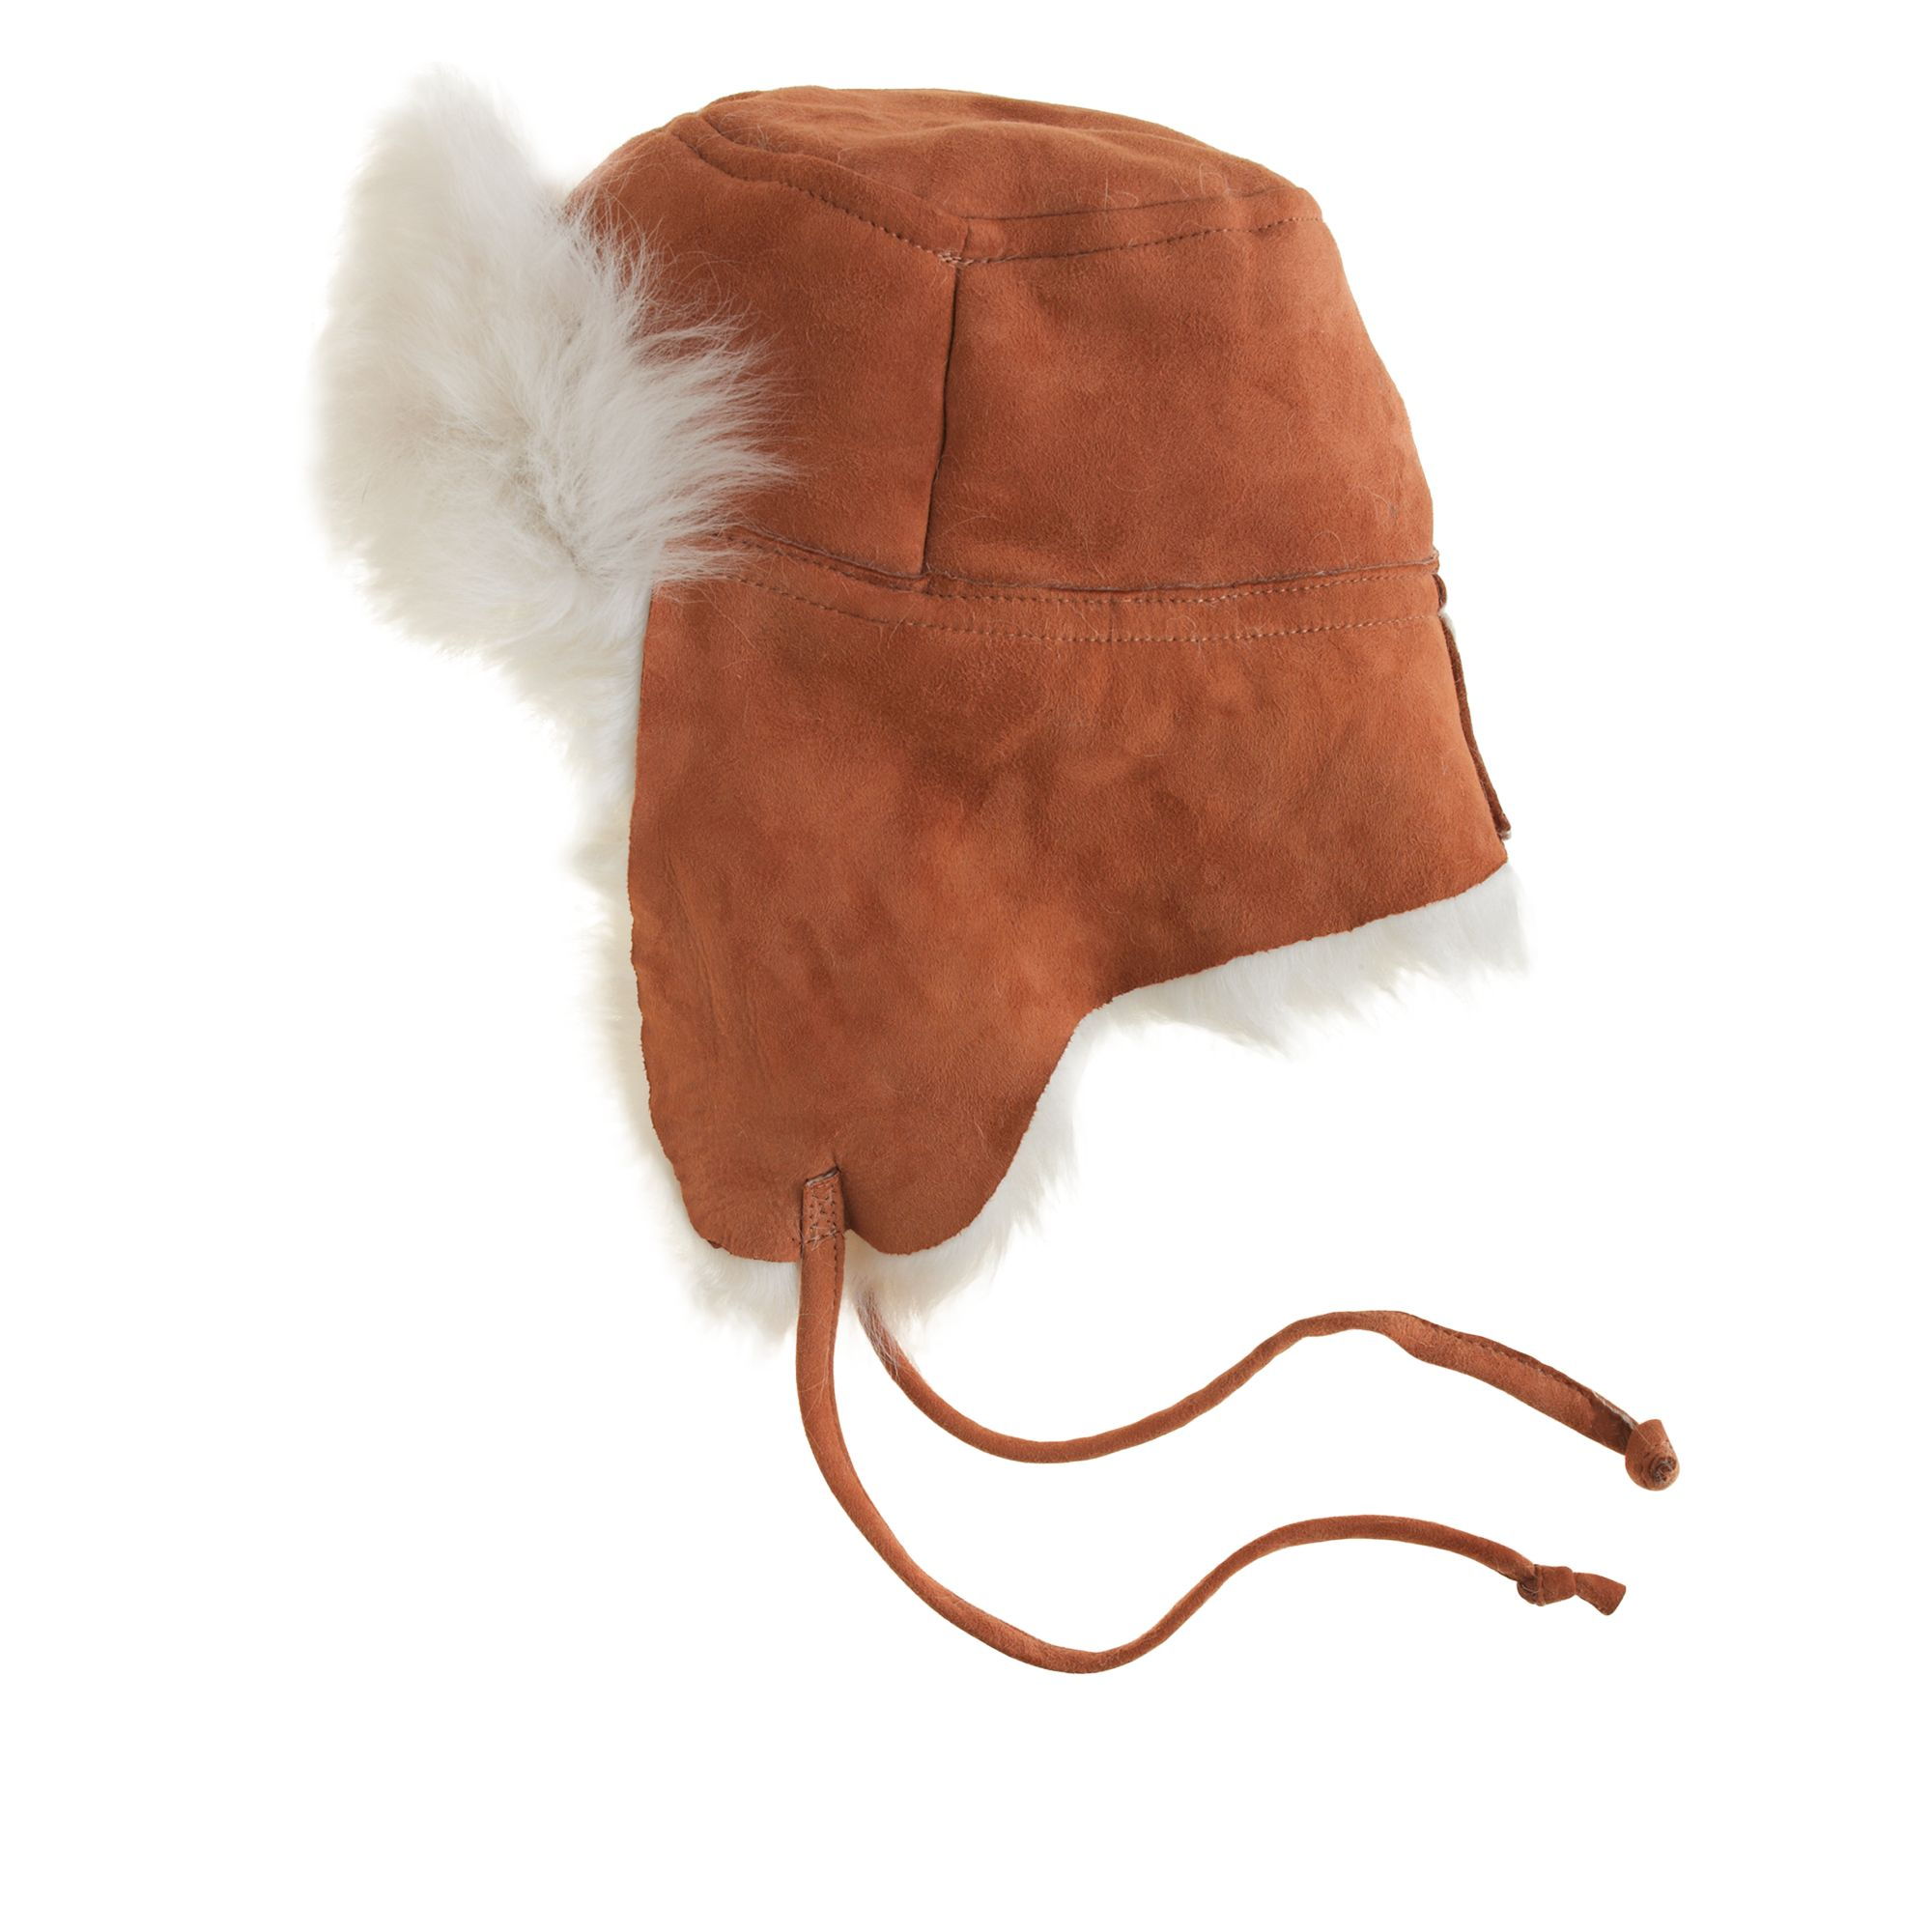 J.Crew Toscana Shearling Trapper Hat in Brown for Men - Lyst deda5bf84aa